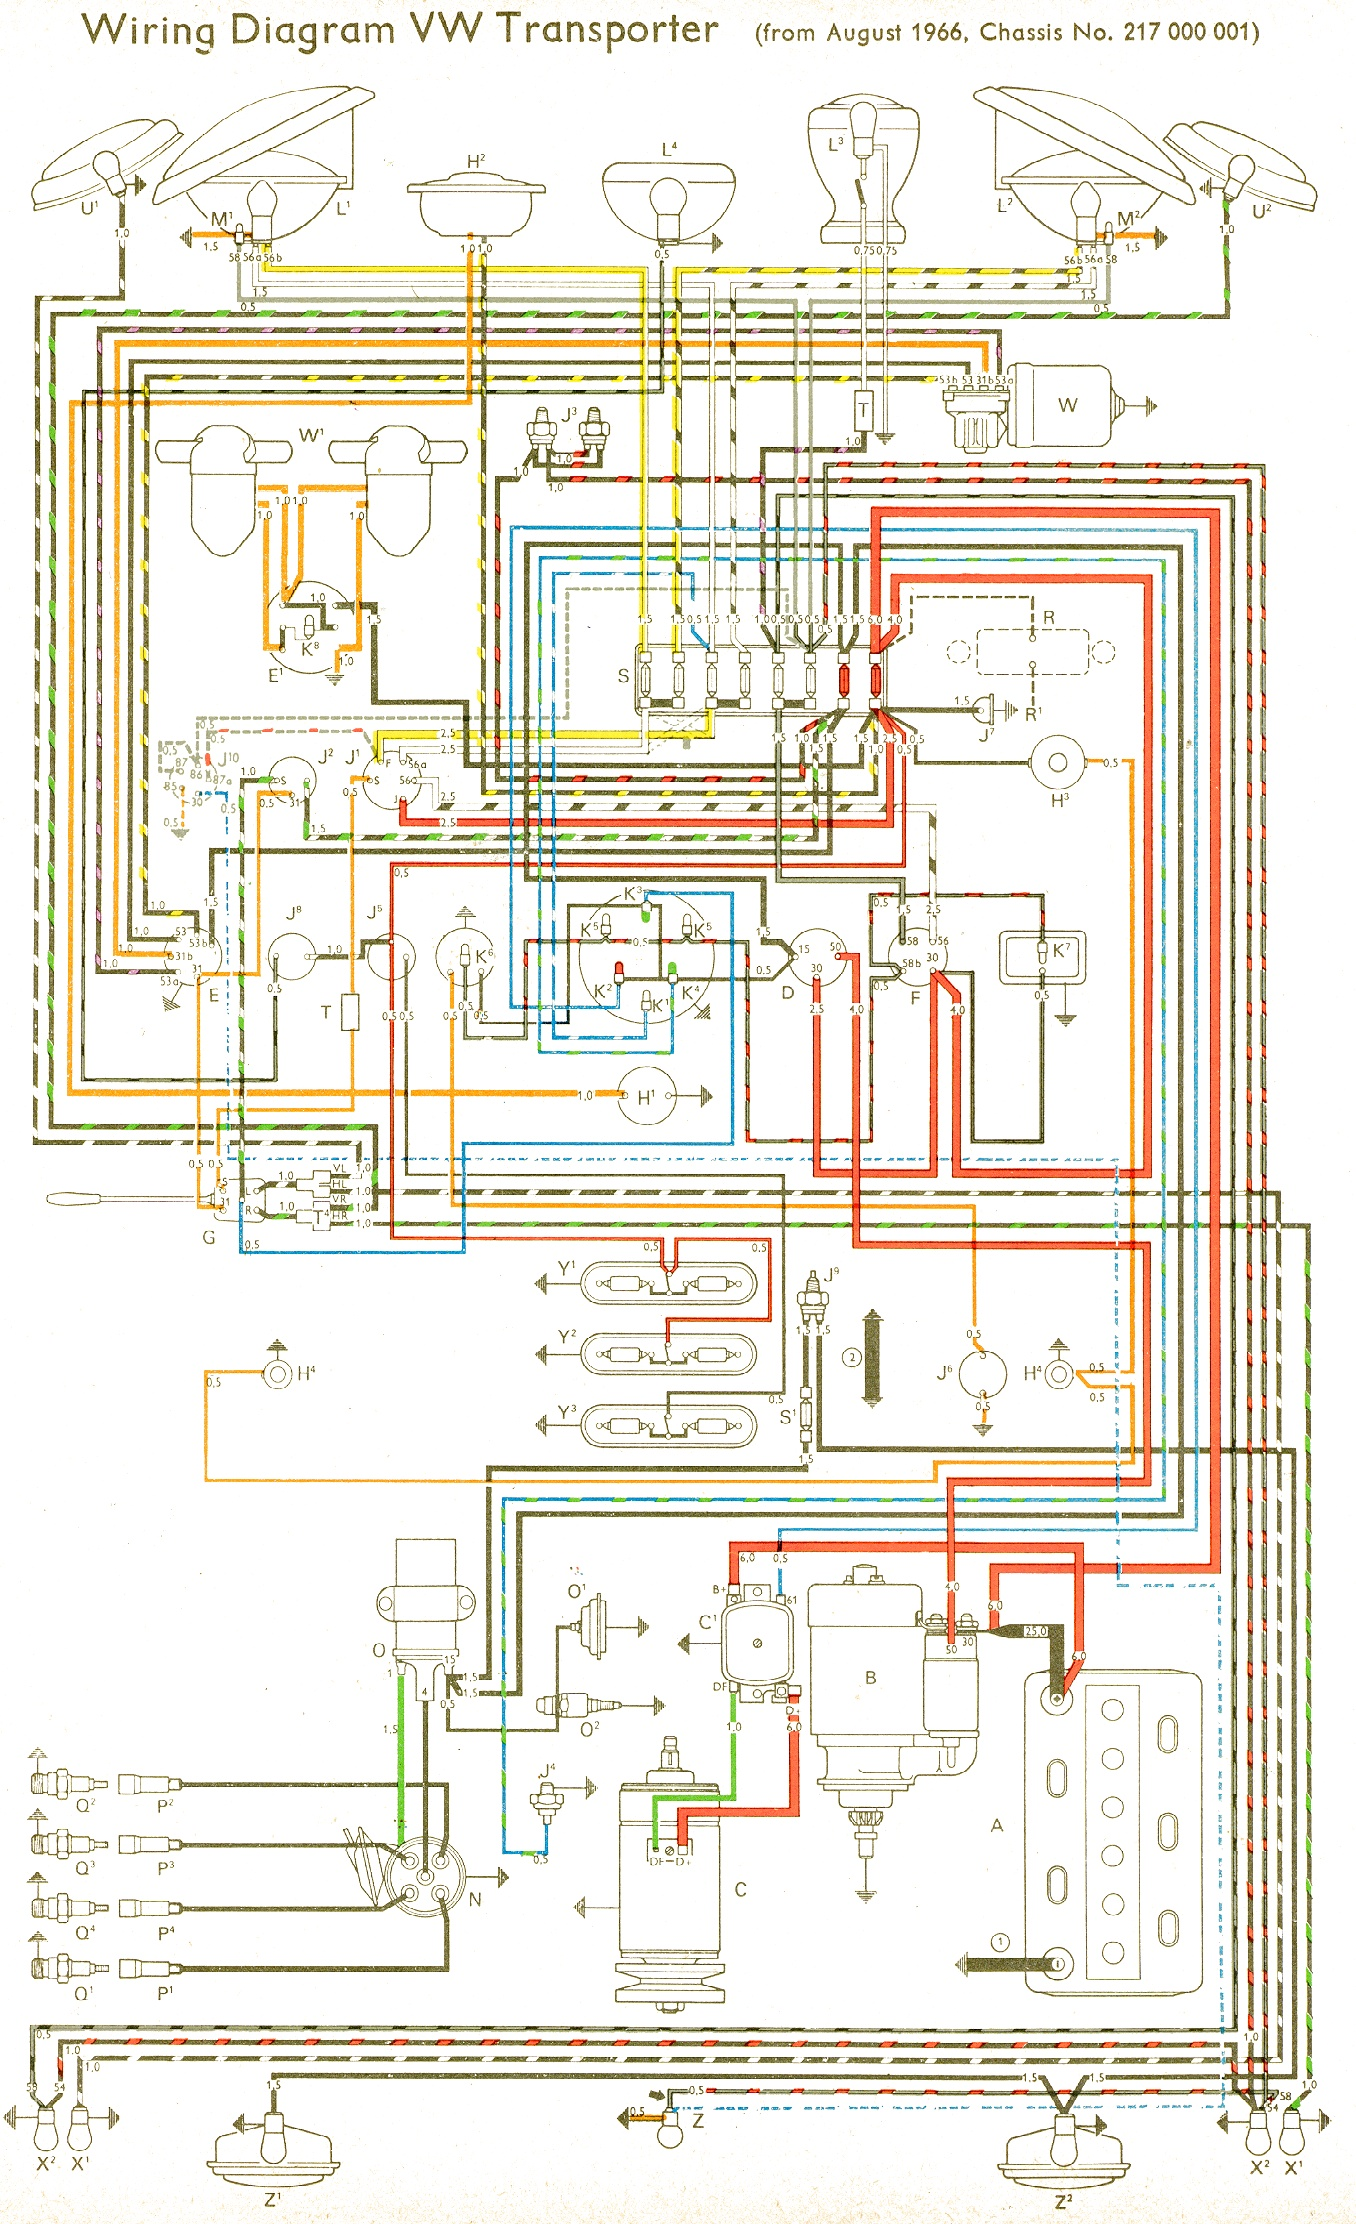 bus 66 bus wiring diagram vw wiring harness diagram \u2022 wiring diagrams j 1965 vw bus wiring harness at mifinder.co